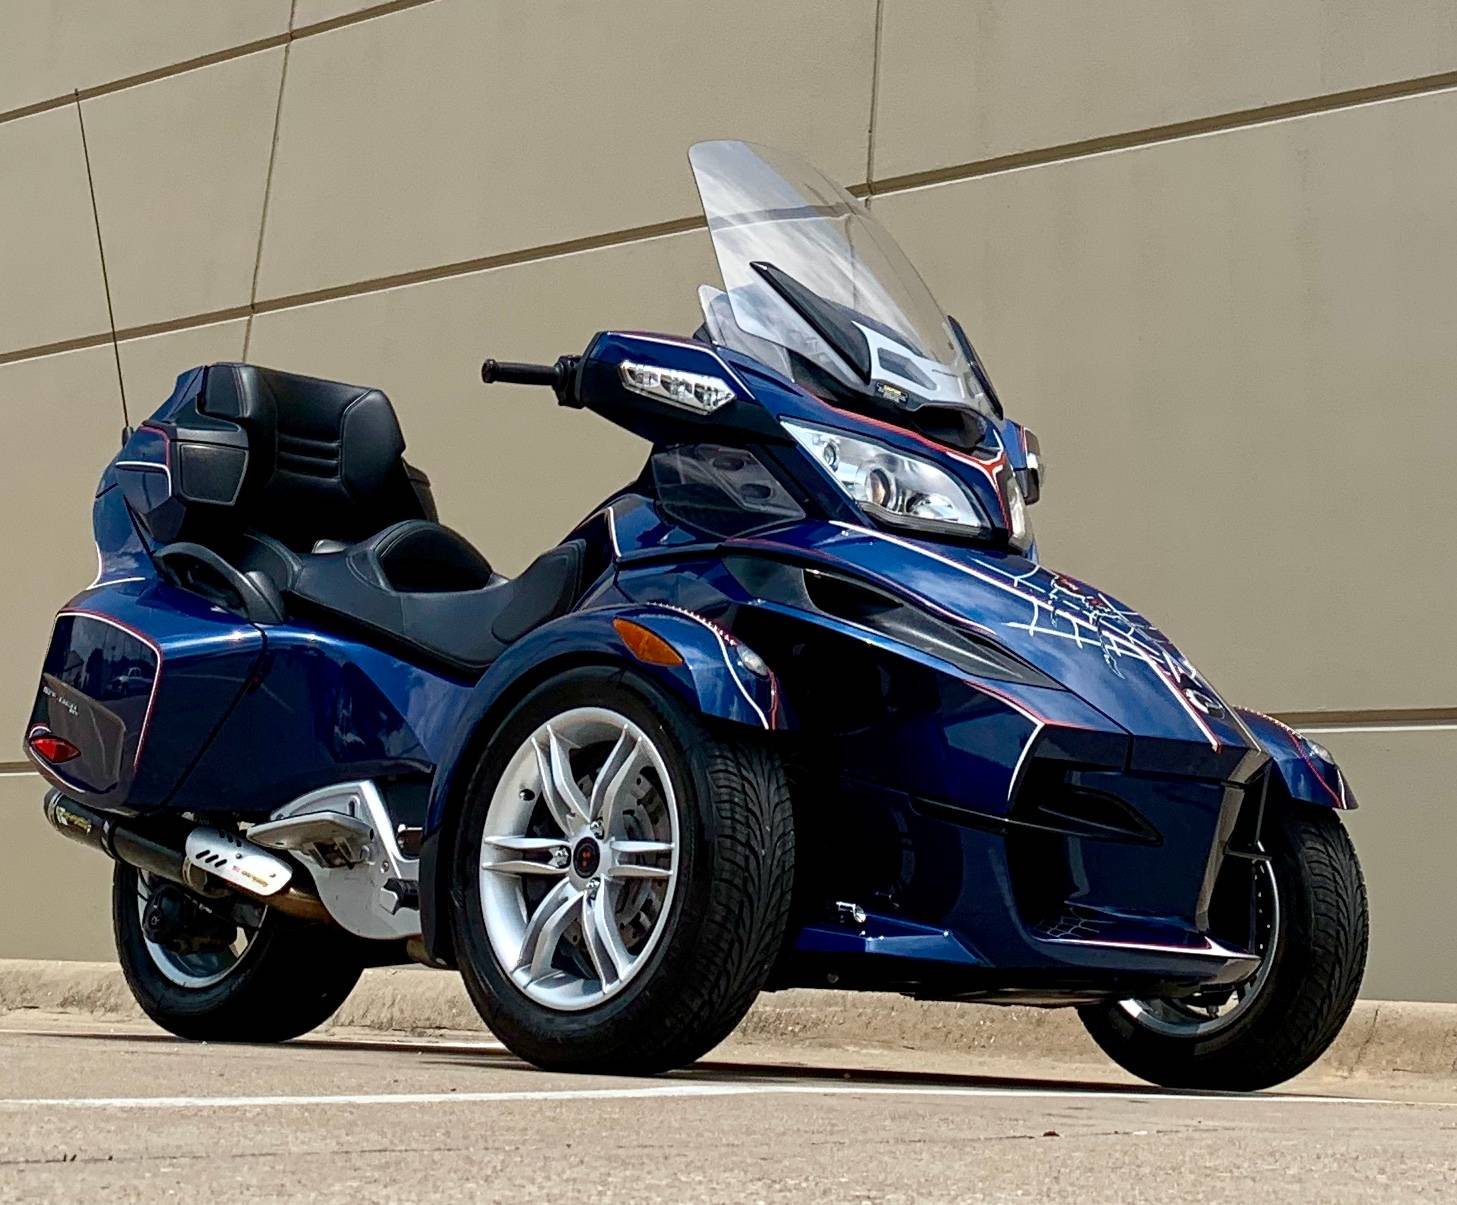 2010 Can-Am Spyder® RT Audio & Convenience SE5 in Plano, Texas - Photo 1